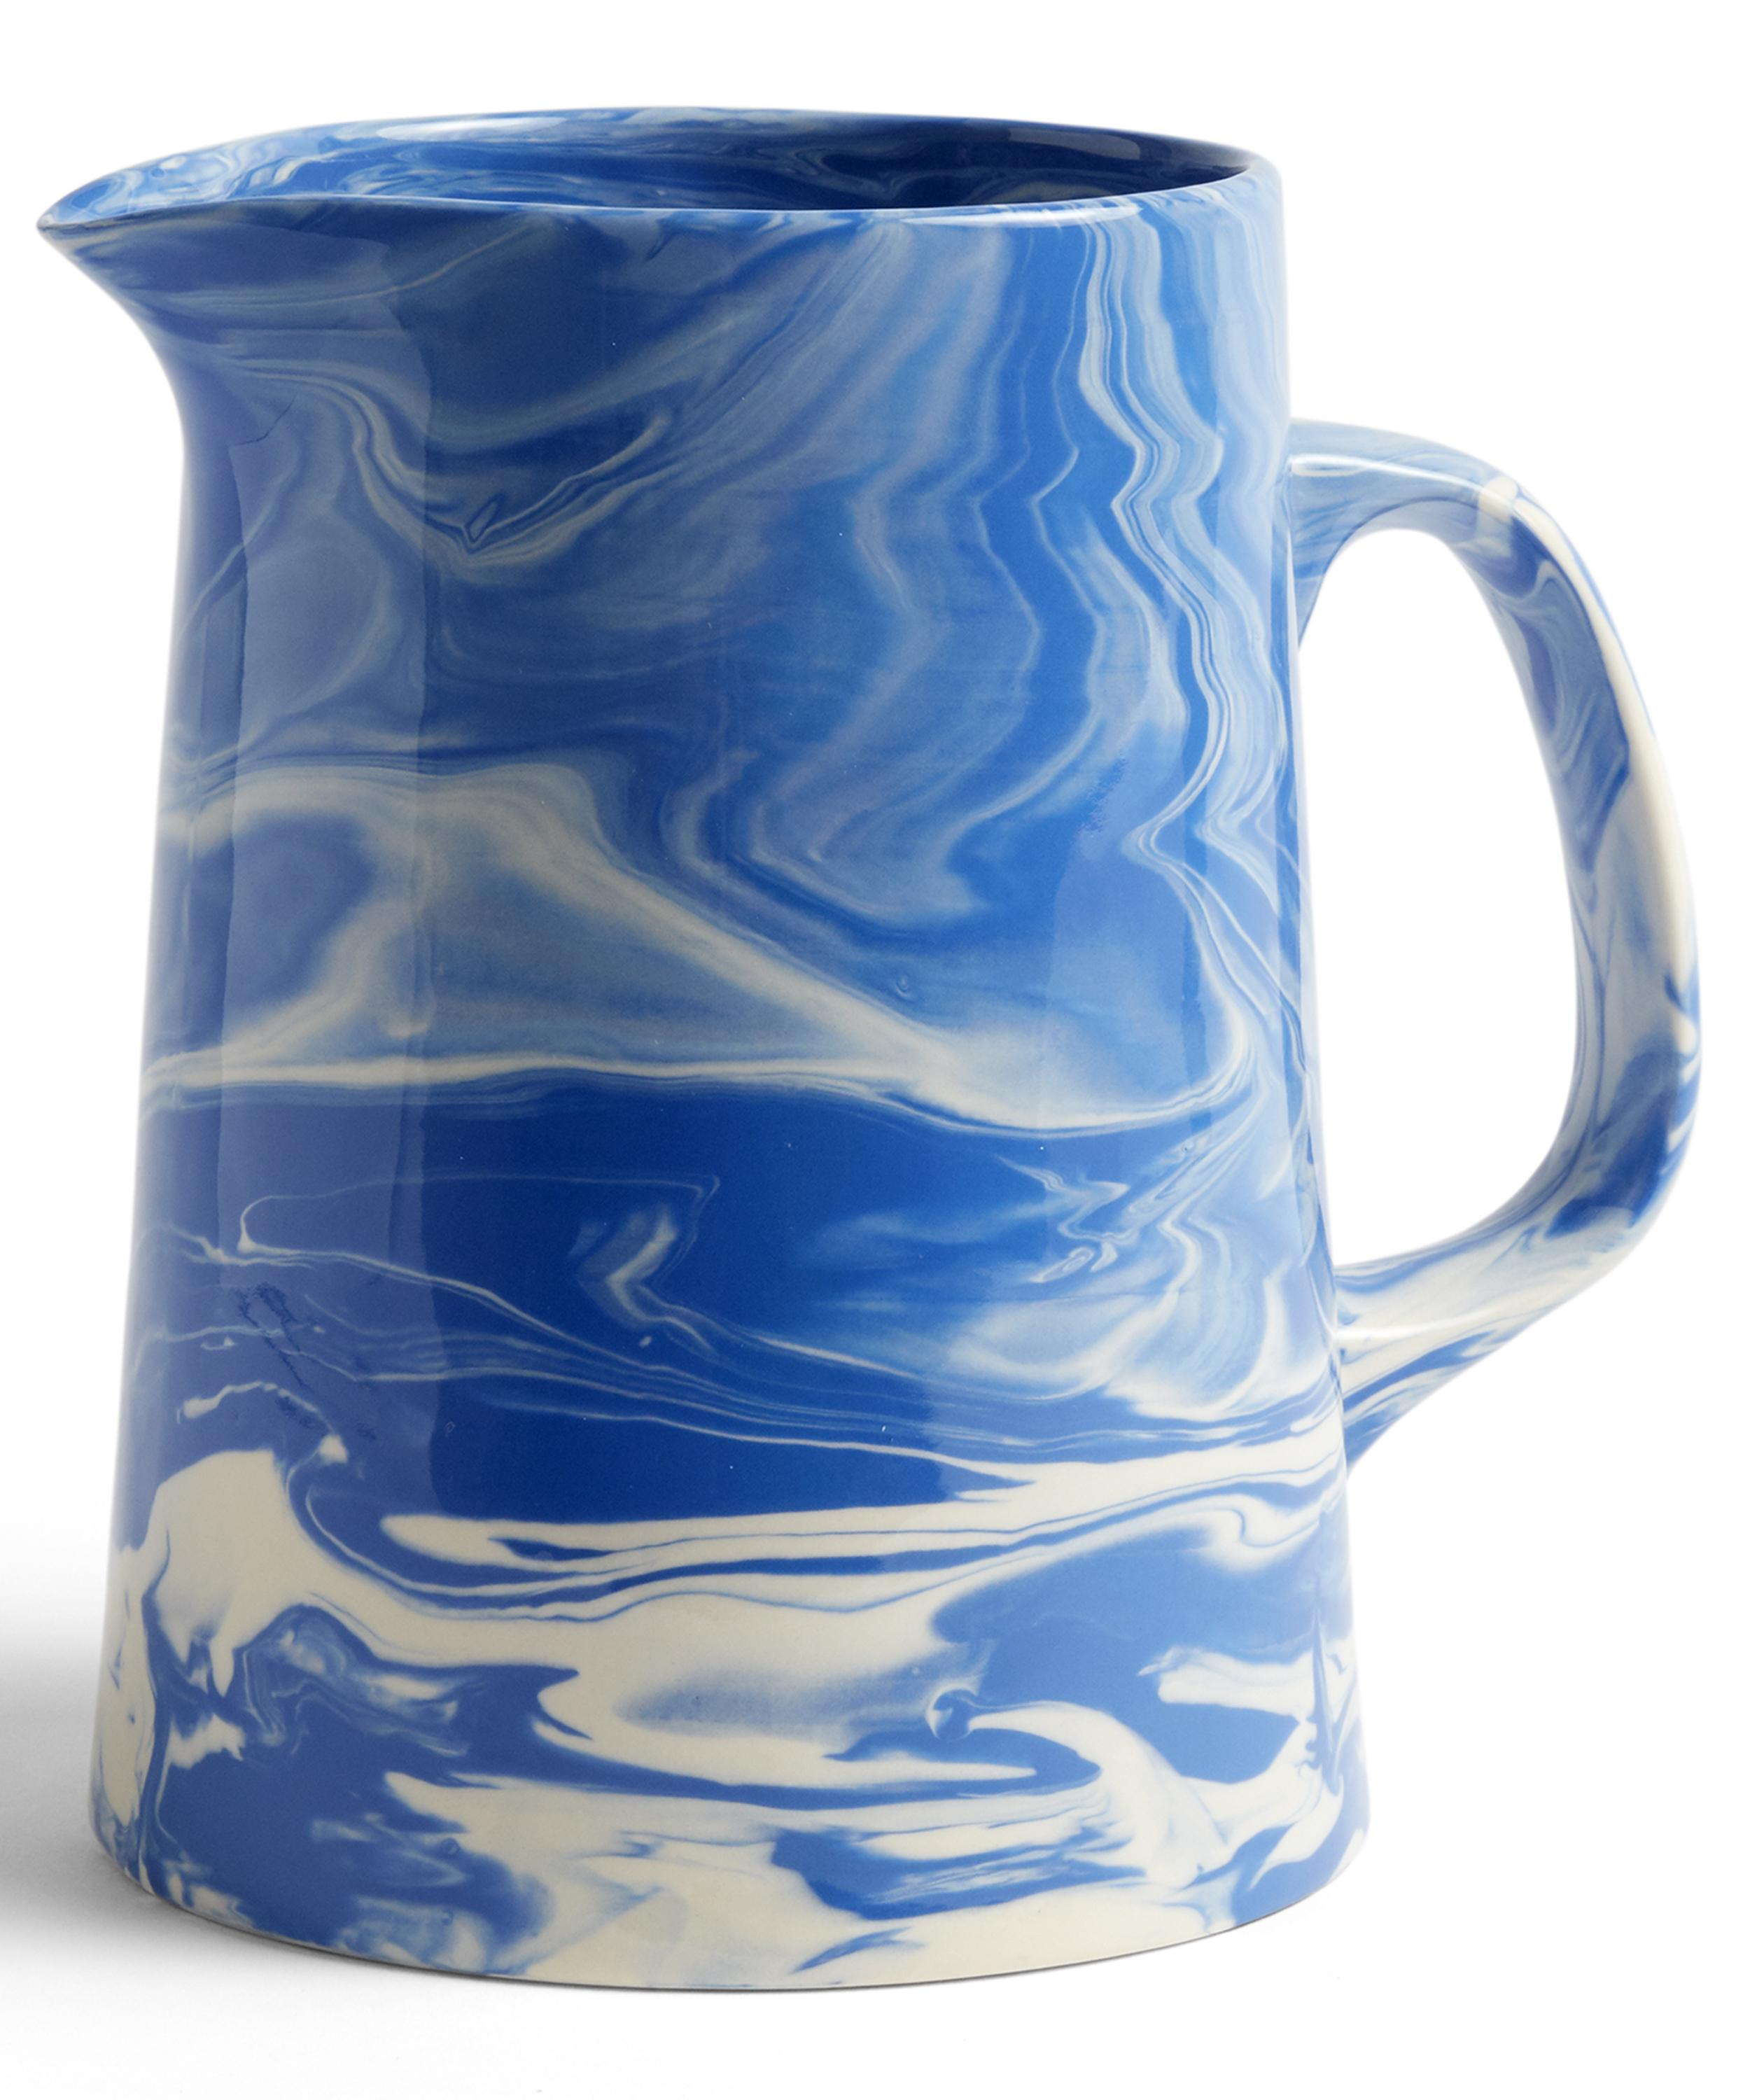 Blue and White Marbled Jug